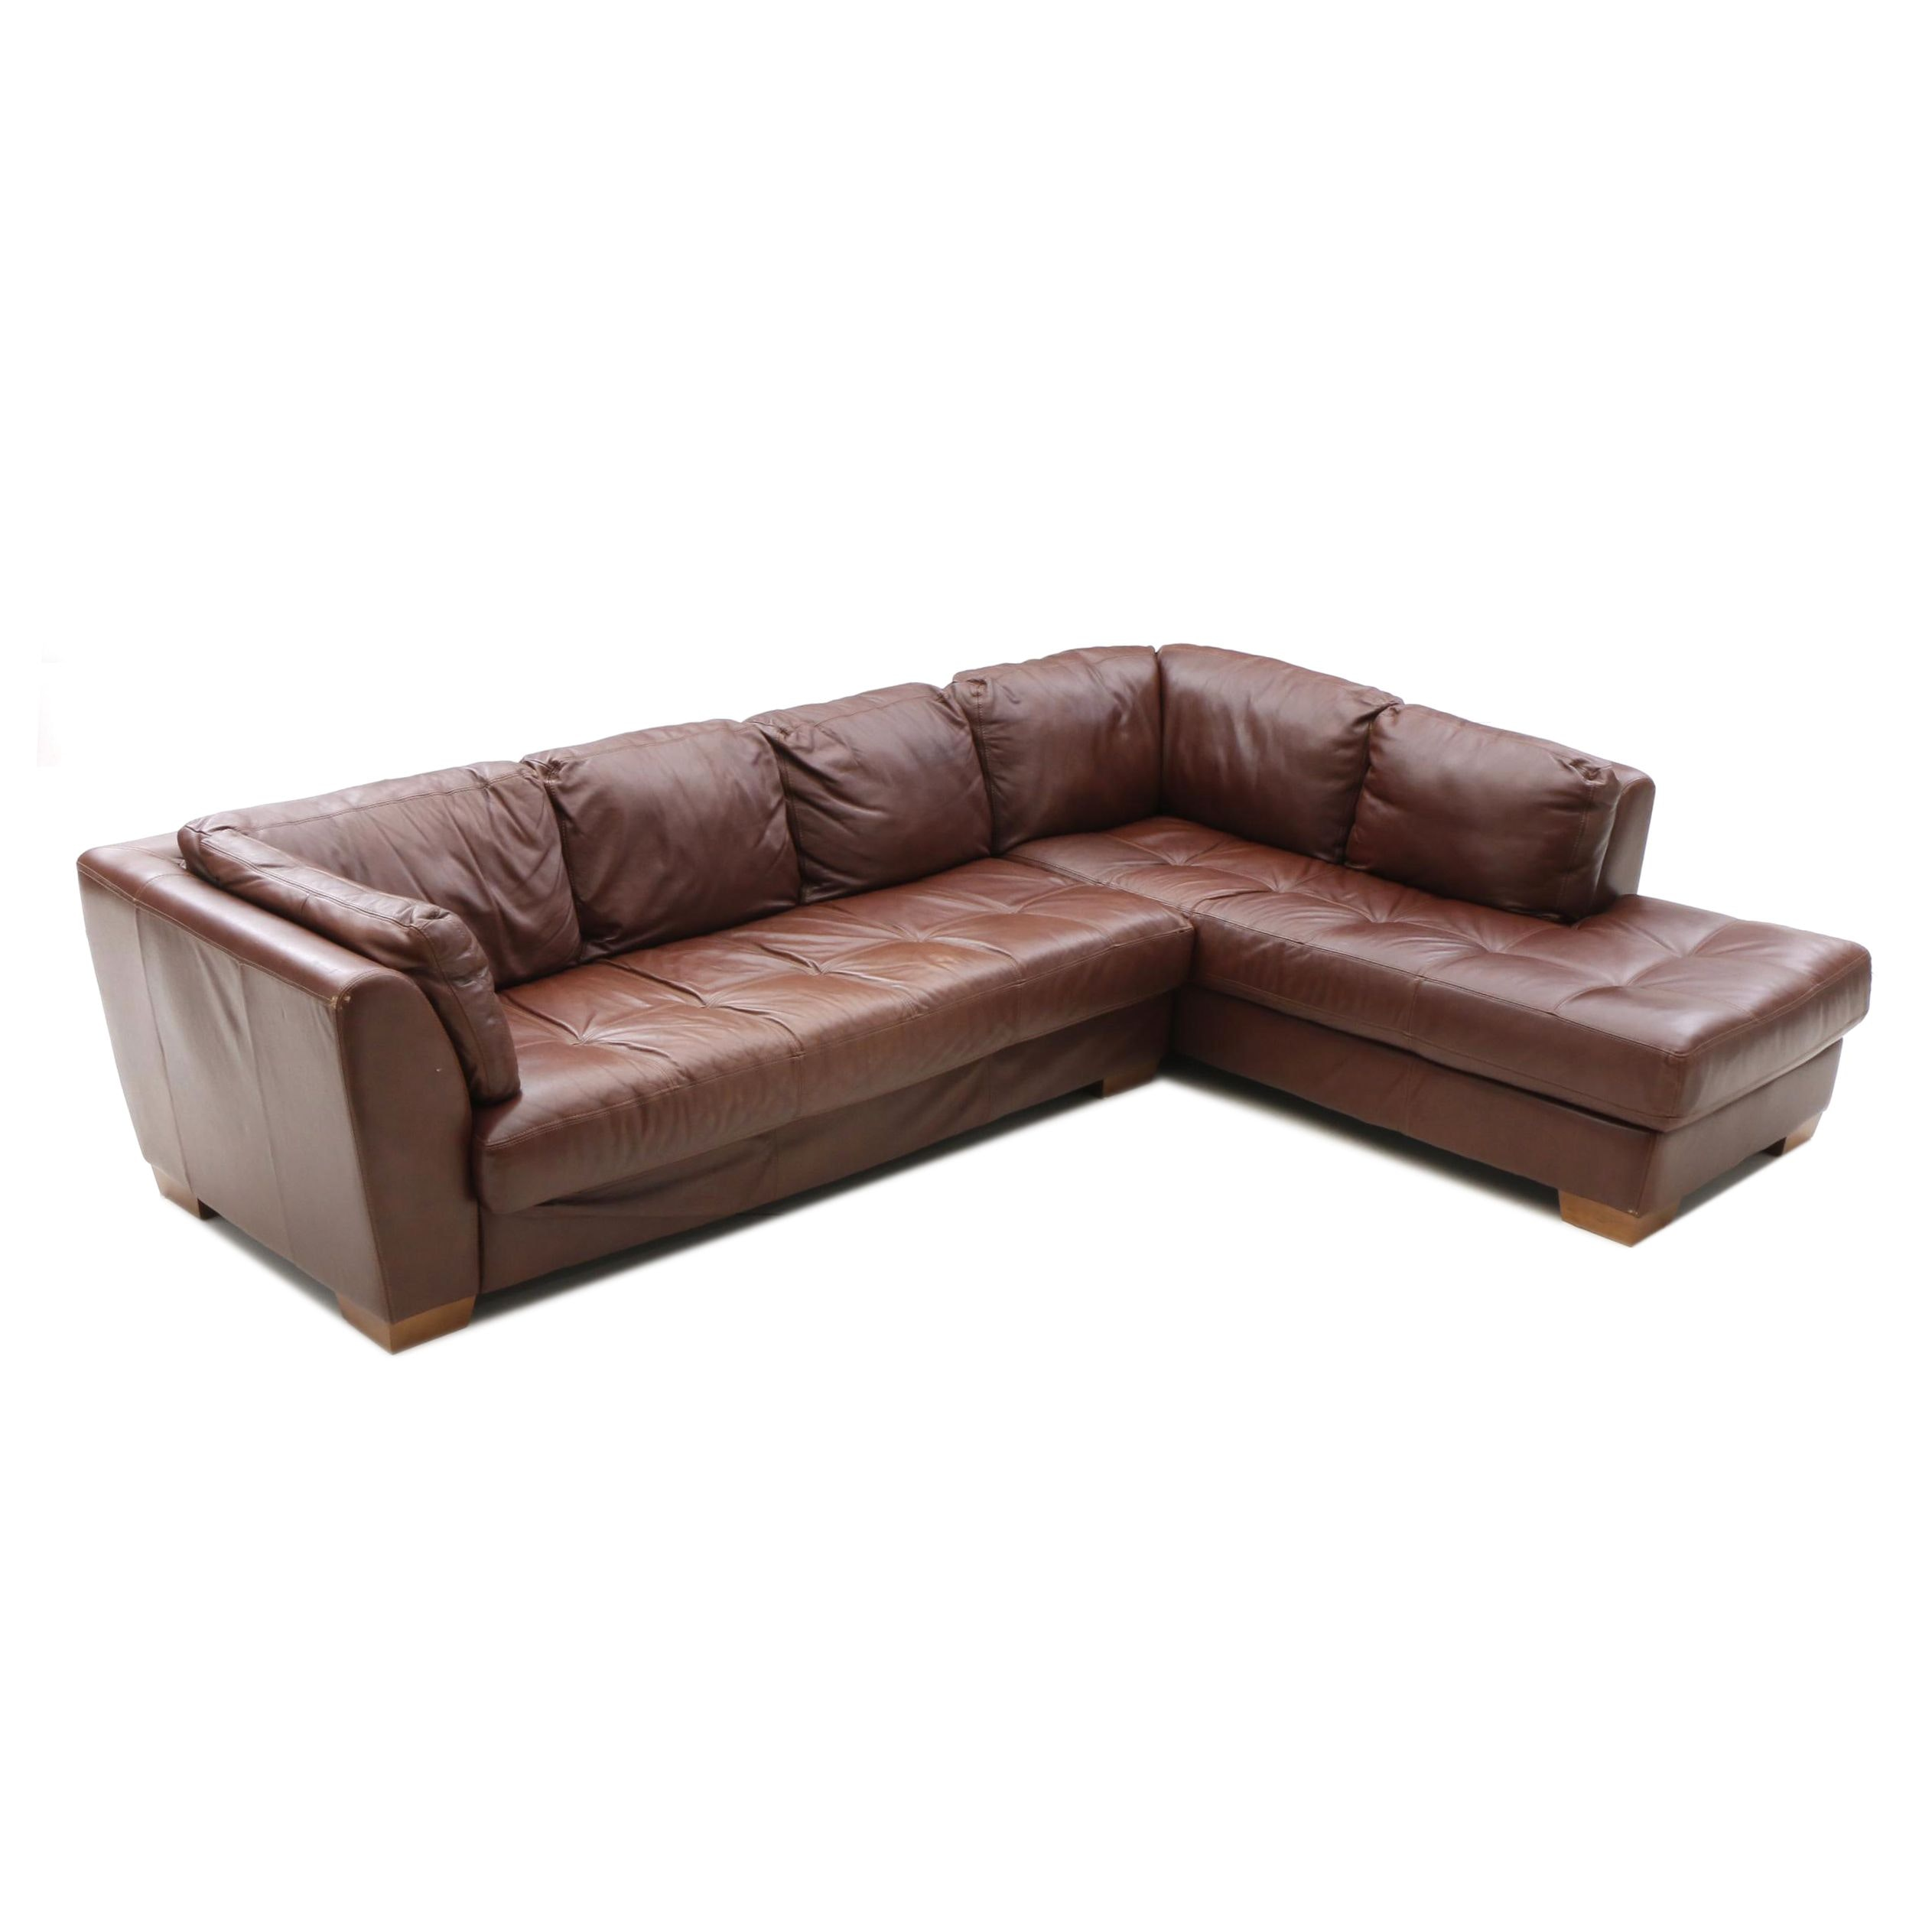 Contemporary Italian Leather Sectional Sofa by Chateau d' Ax